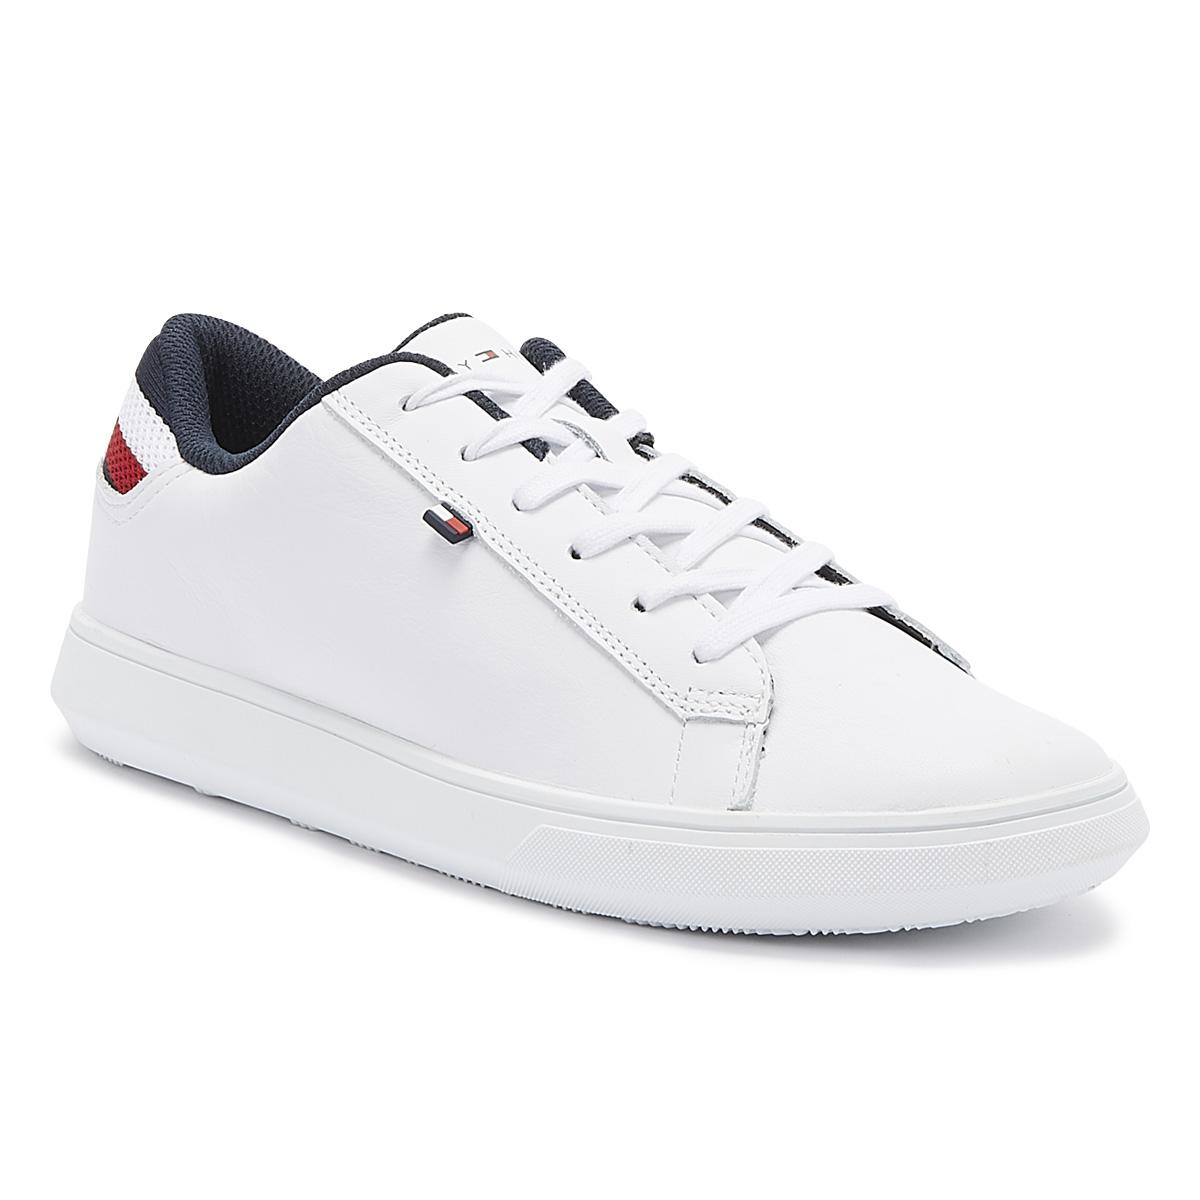 usa cheap sale skate shoes undefeated x Tommy Hilfiger Essential Mens White Leather Trainers for Men ...